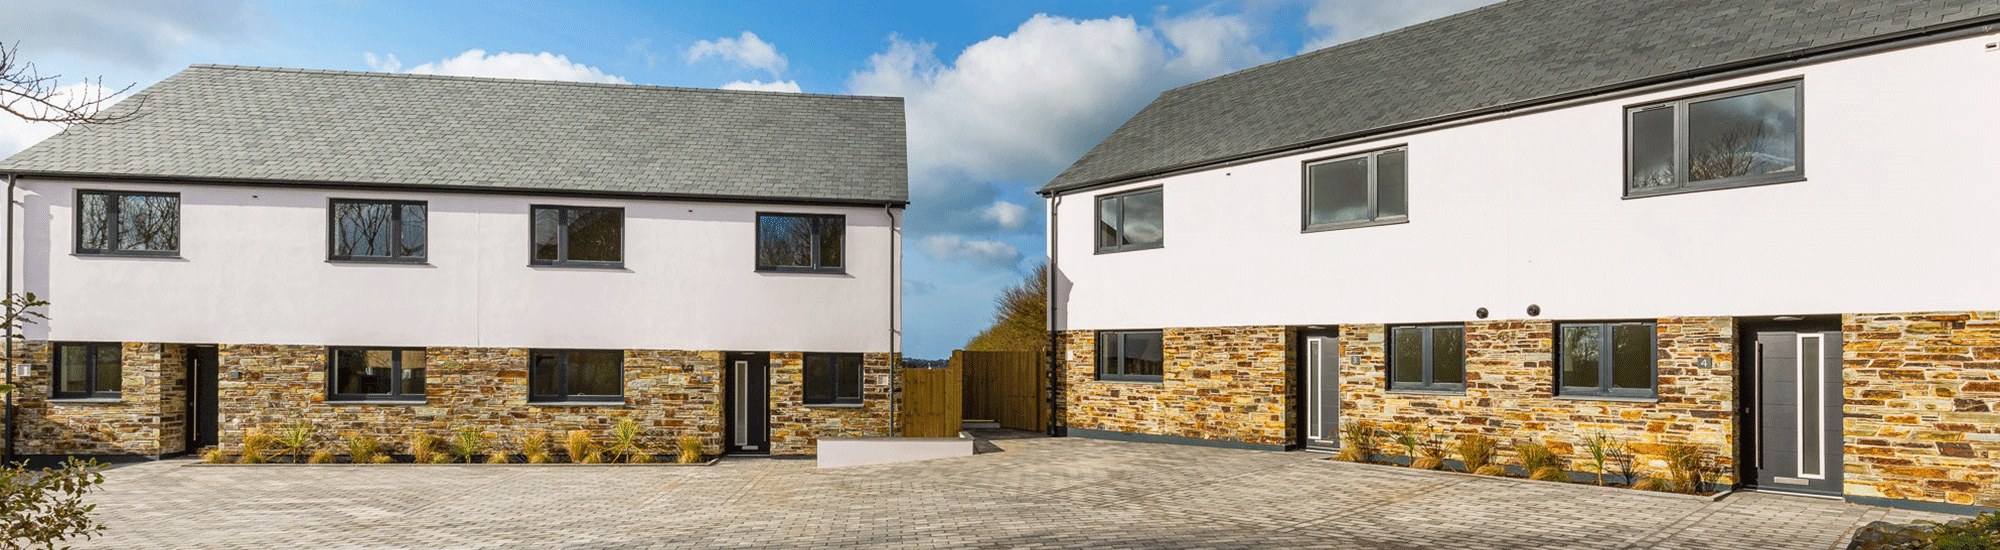 trevilley court custom developments - Trevilley Close